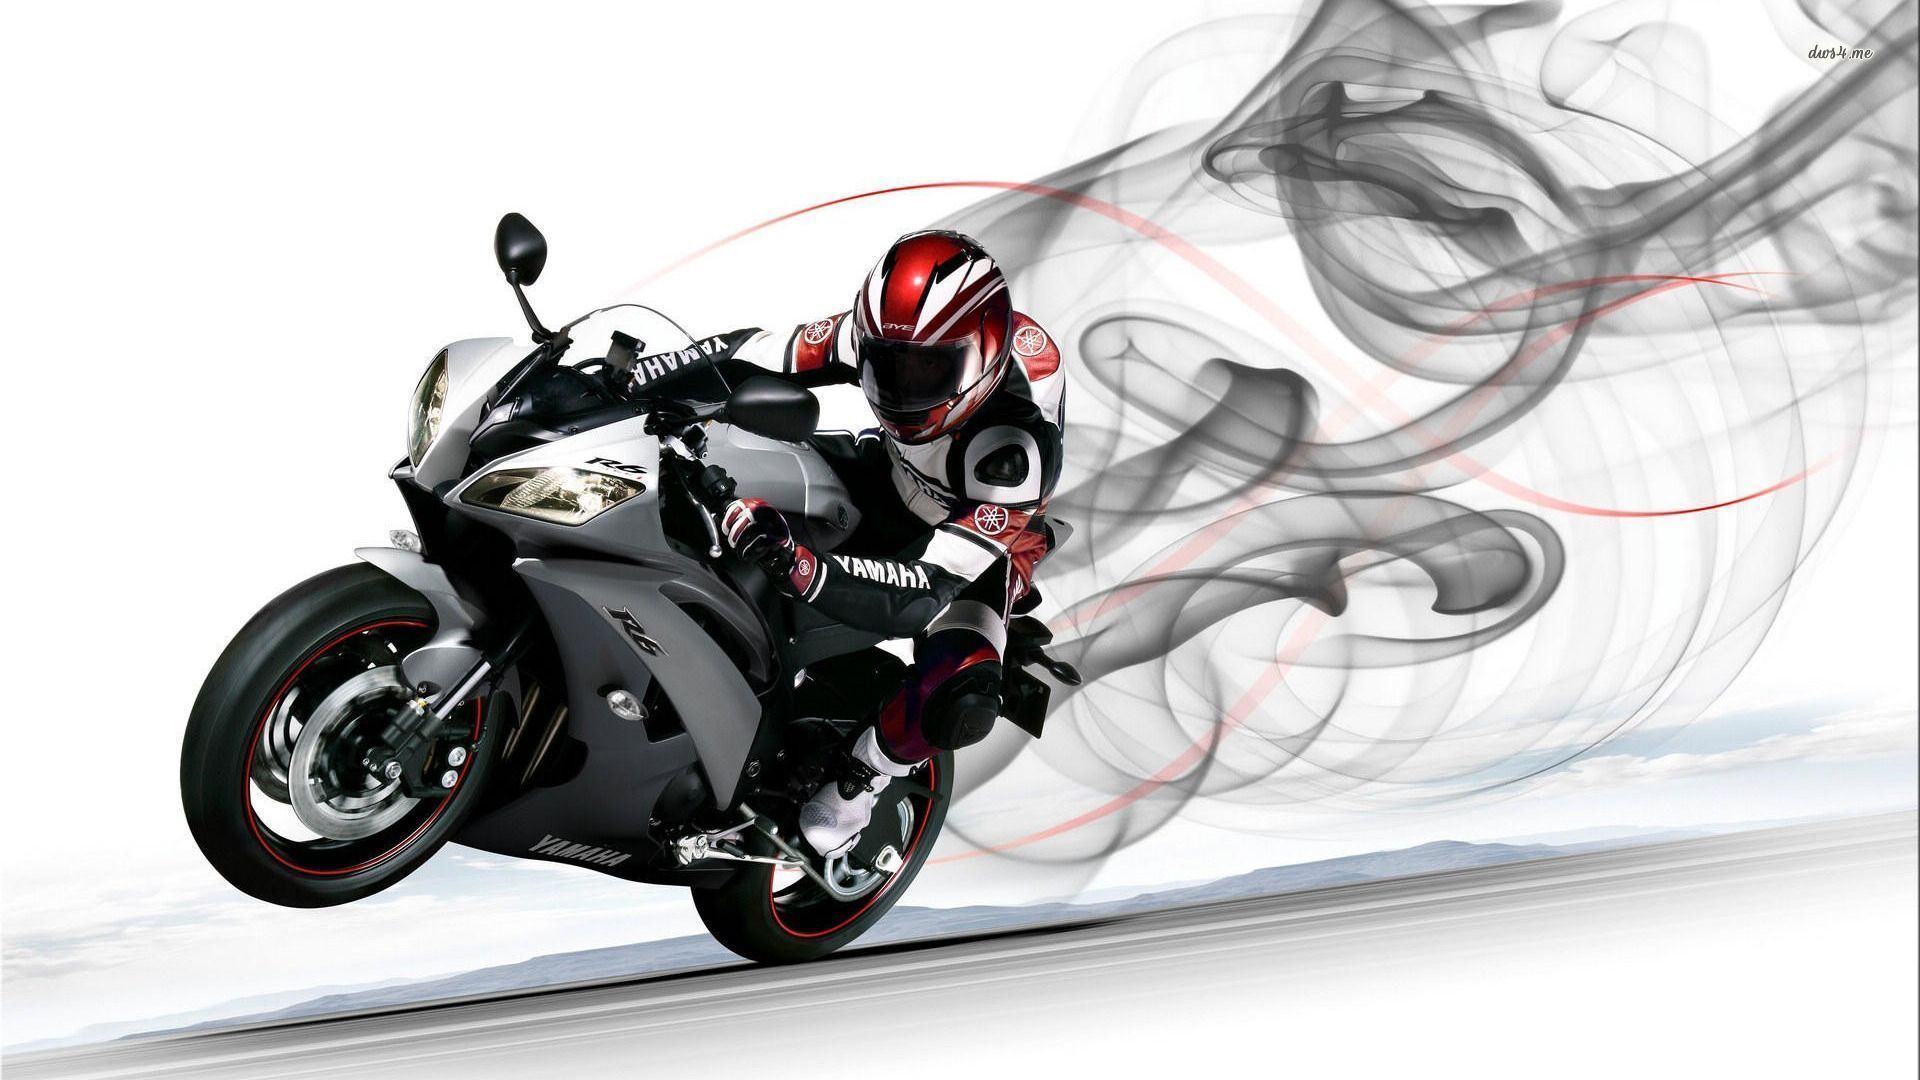 yamaha r6 wallpaper motorcycle wallpapers